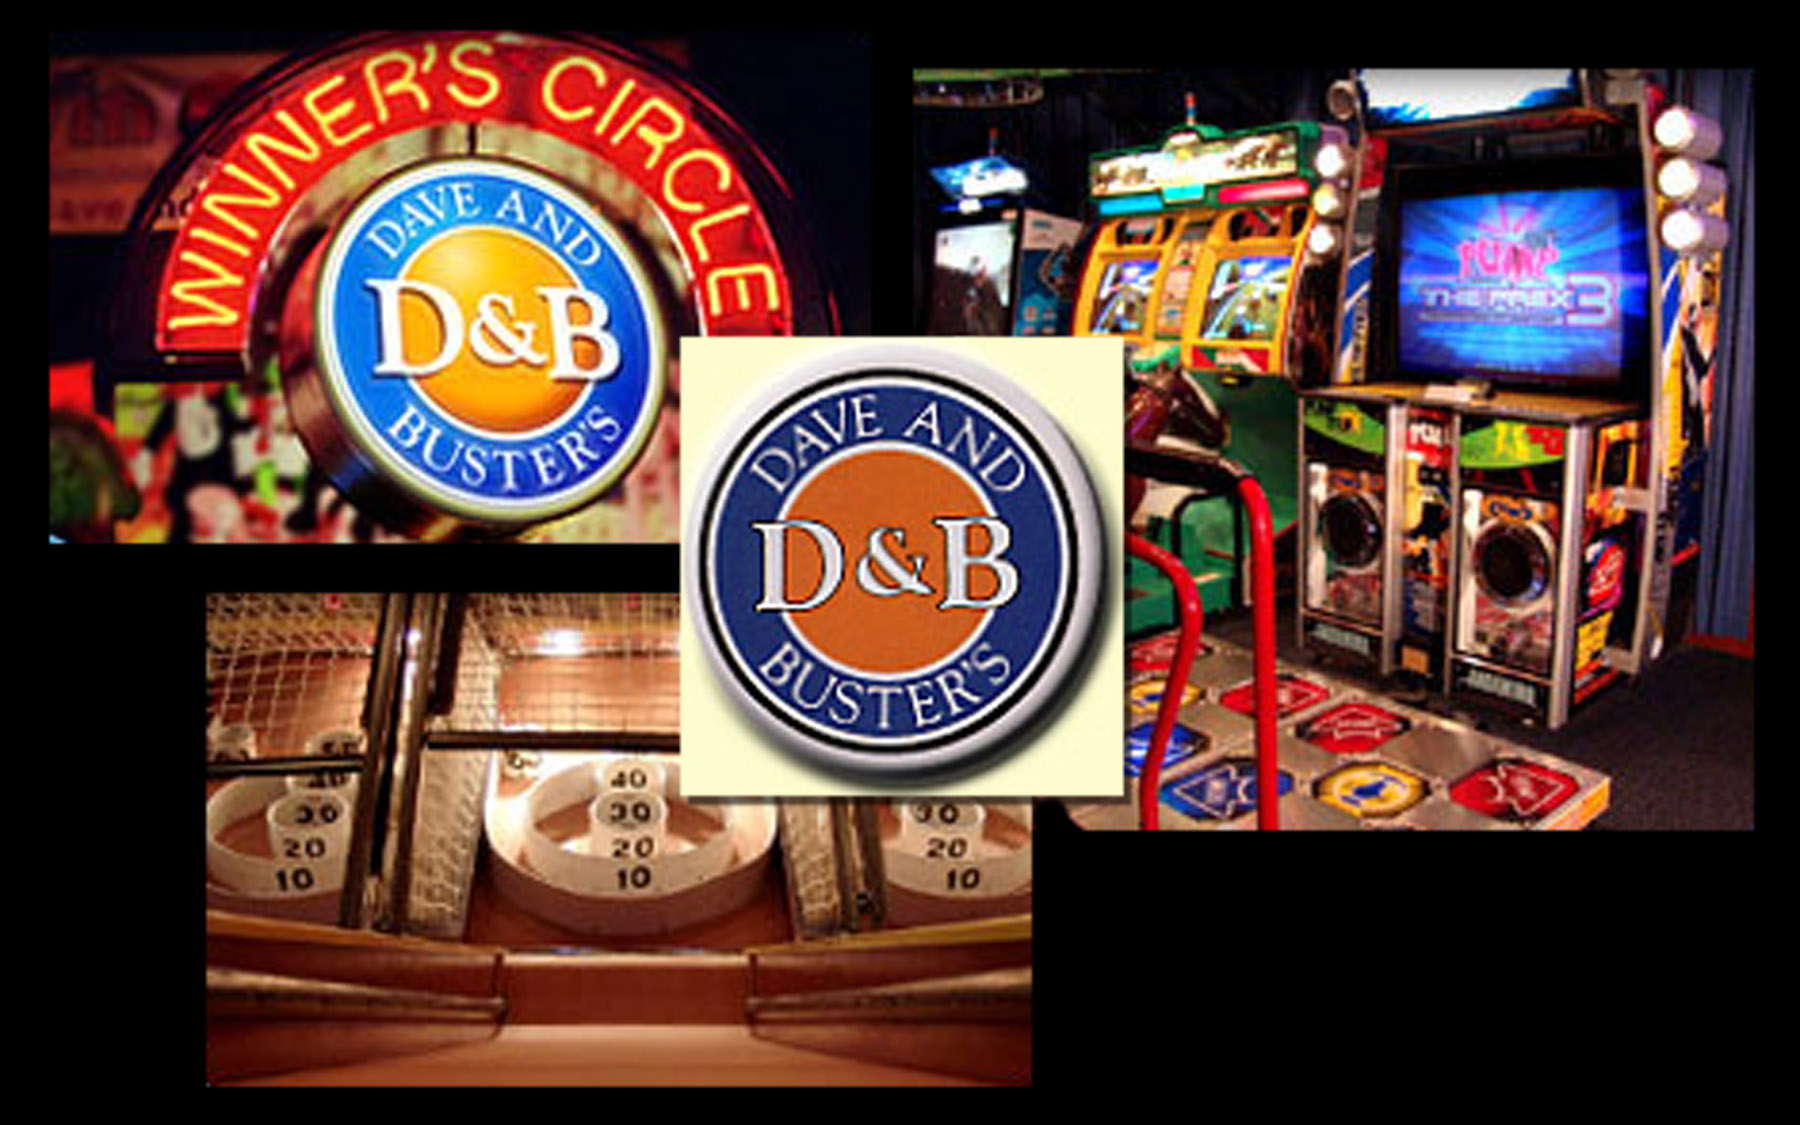 Dave & Buster's in Houston, TX